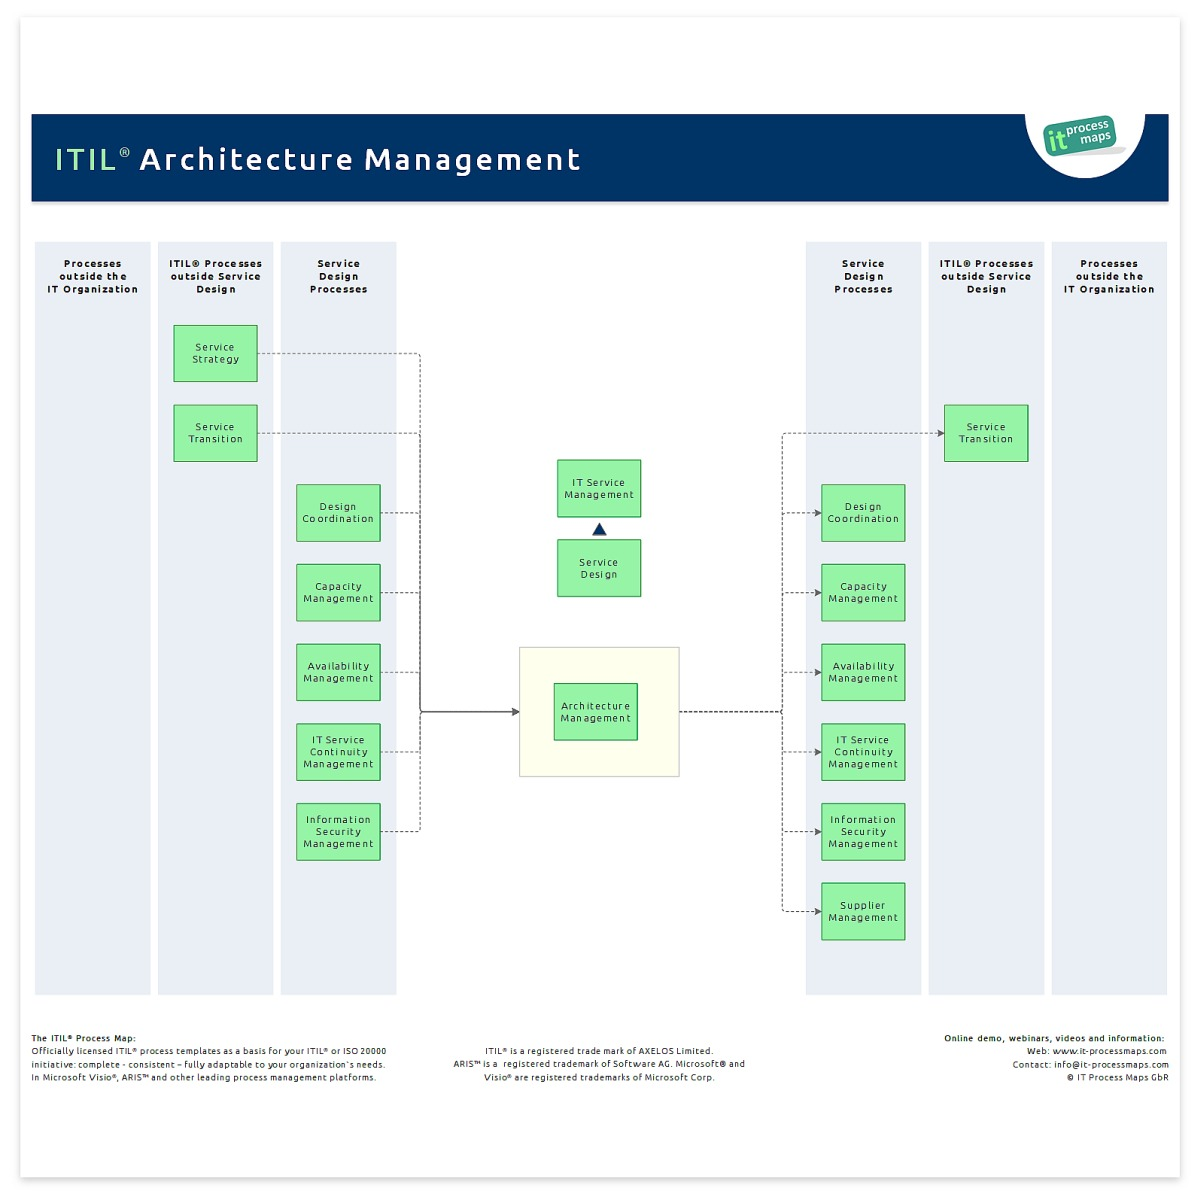 It architecture management it process wiki the process overview of itil architecture management malvernweather Gallery